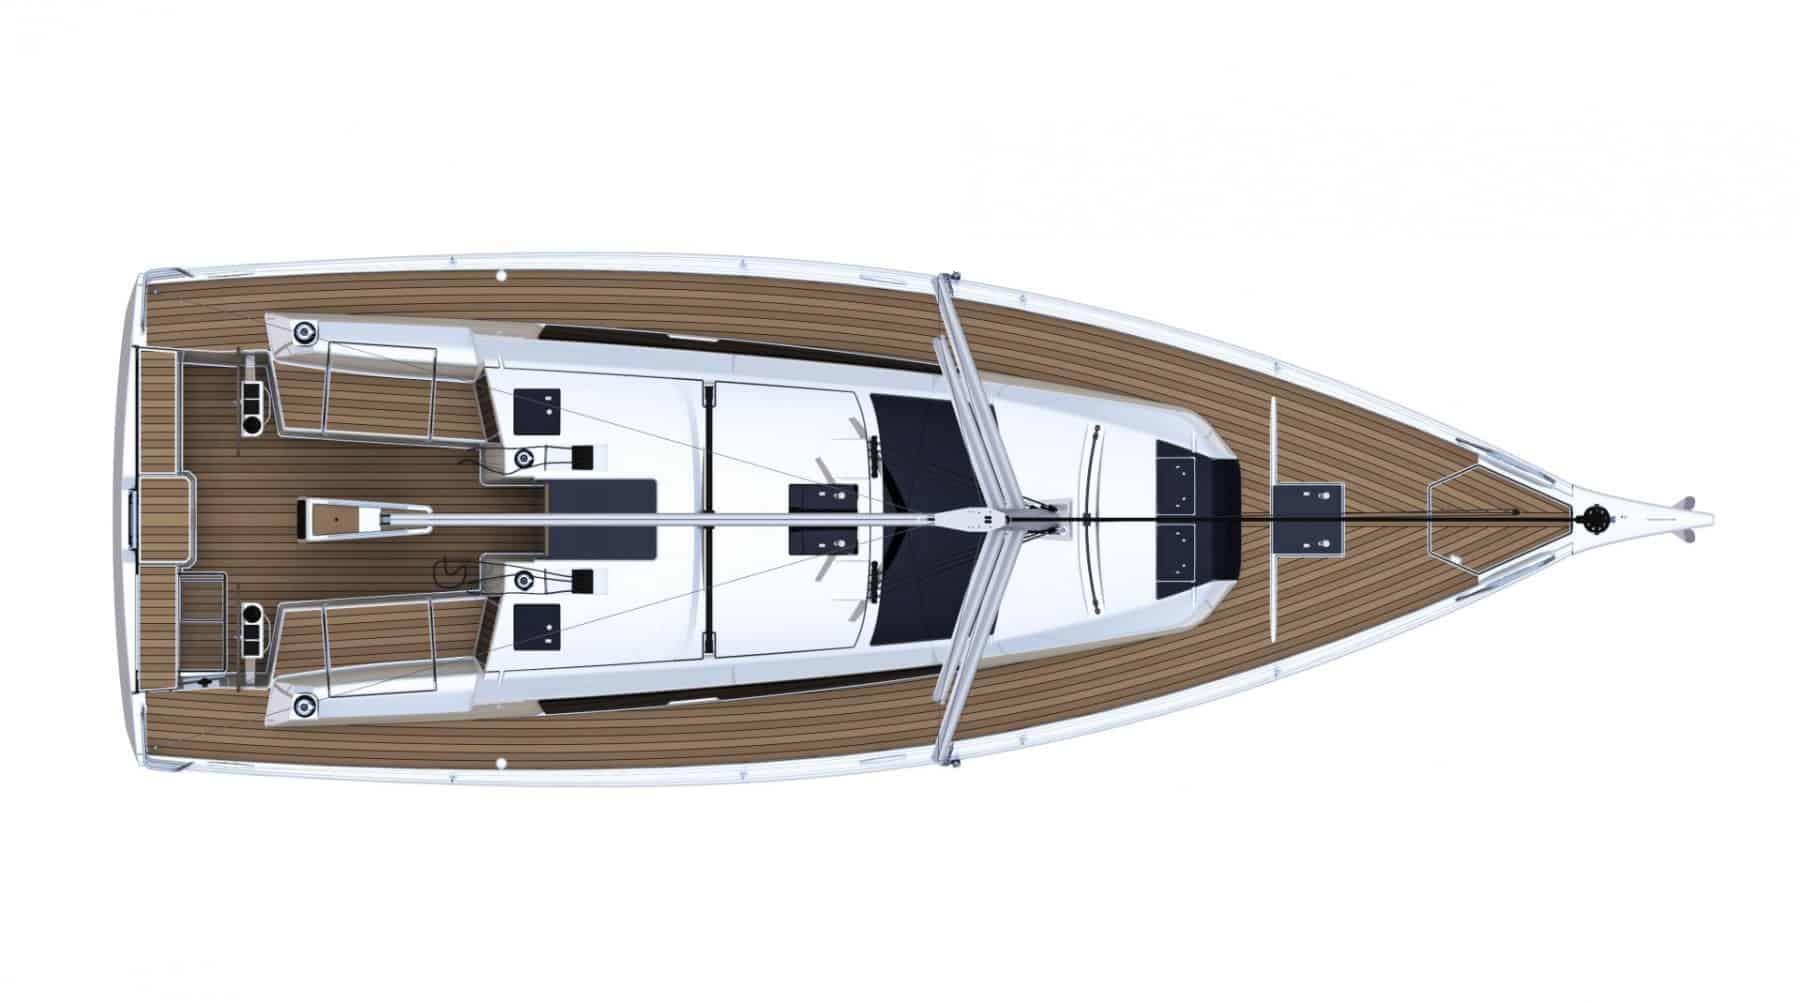 dufour 390 deck layout